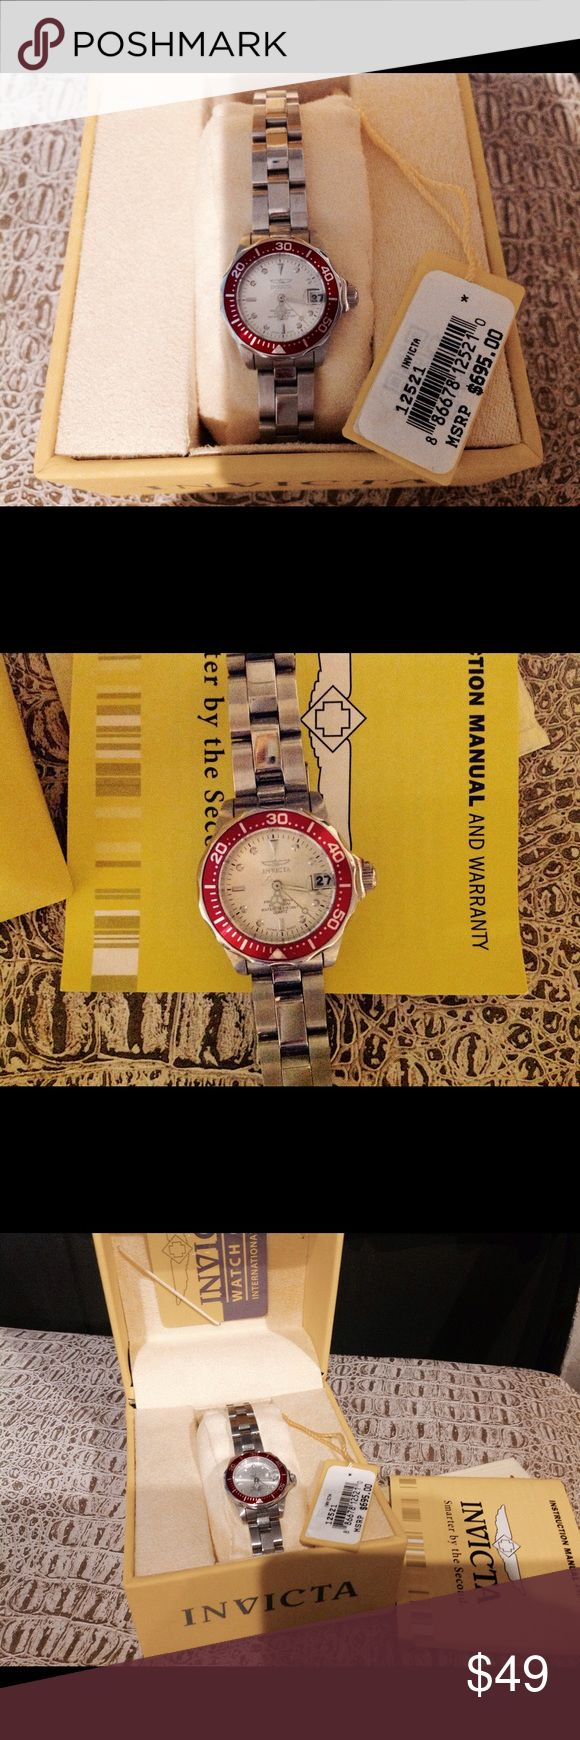 Invicta Women's diver watch Invicta Women's Divers watch, excellent condition, does need battery Invicta Accessories Watches